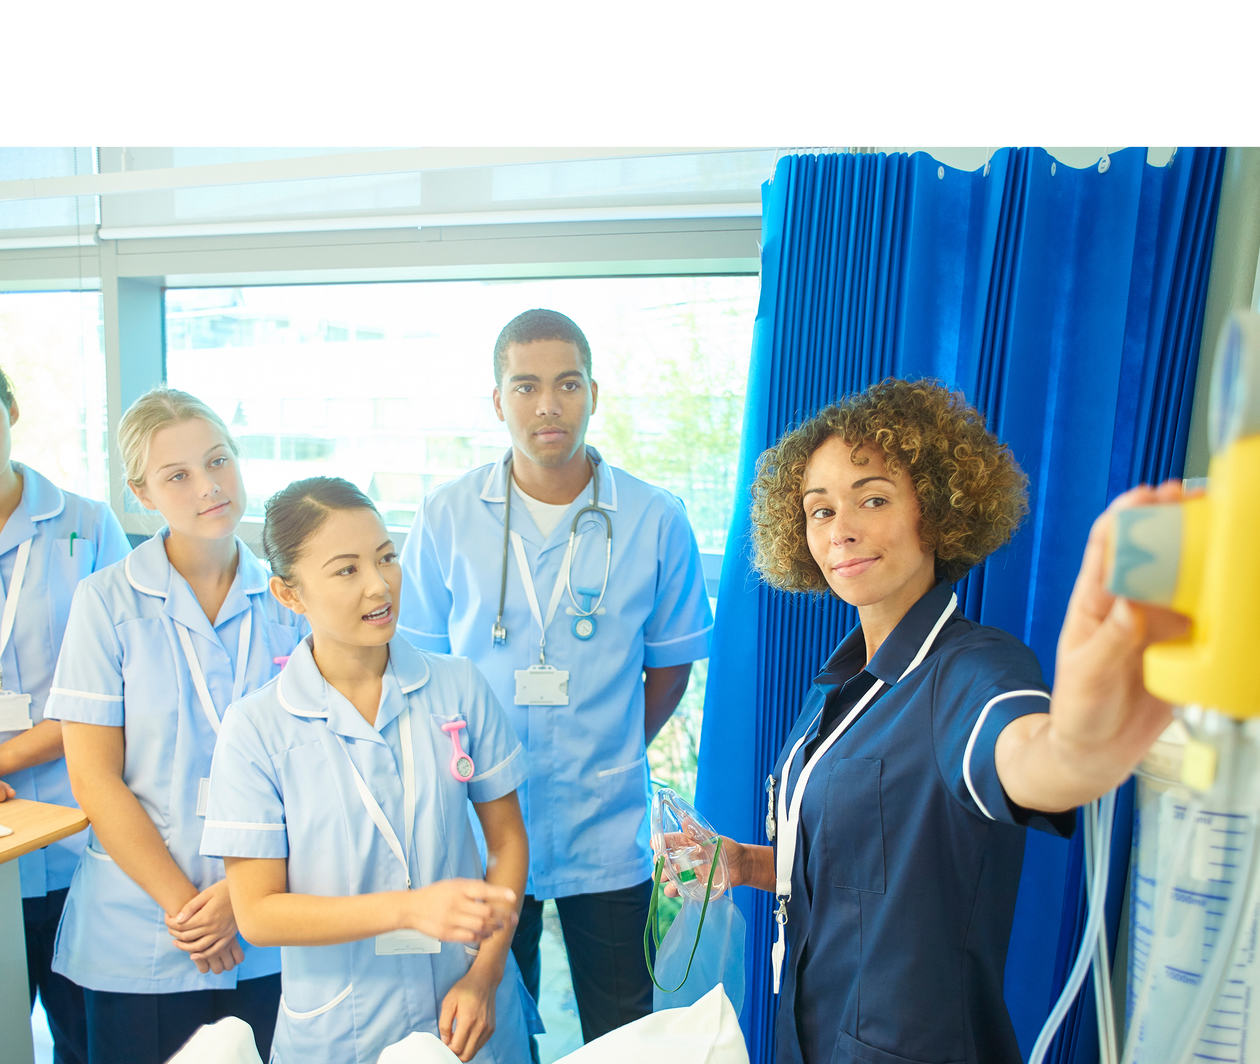 The Clinical Learning Environment